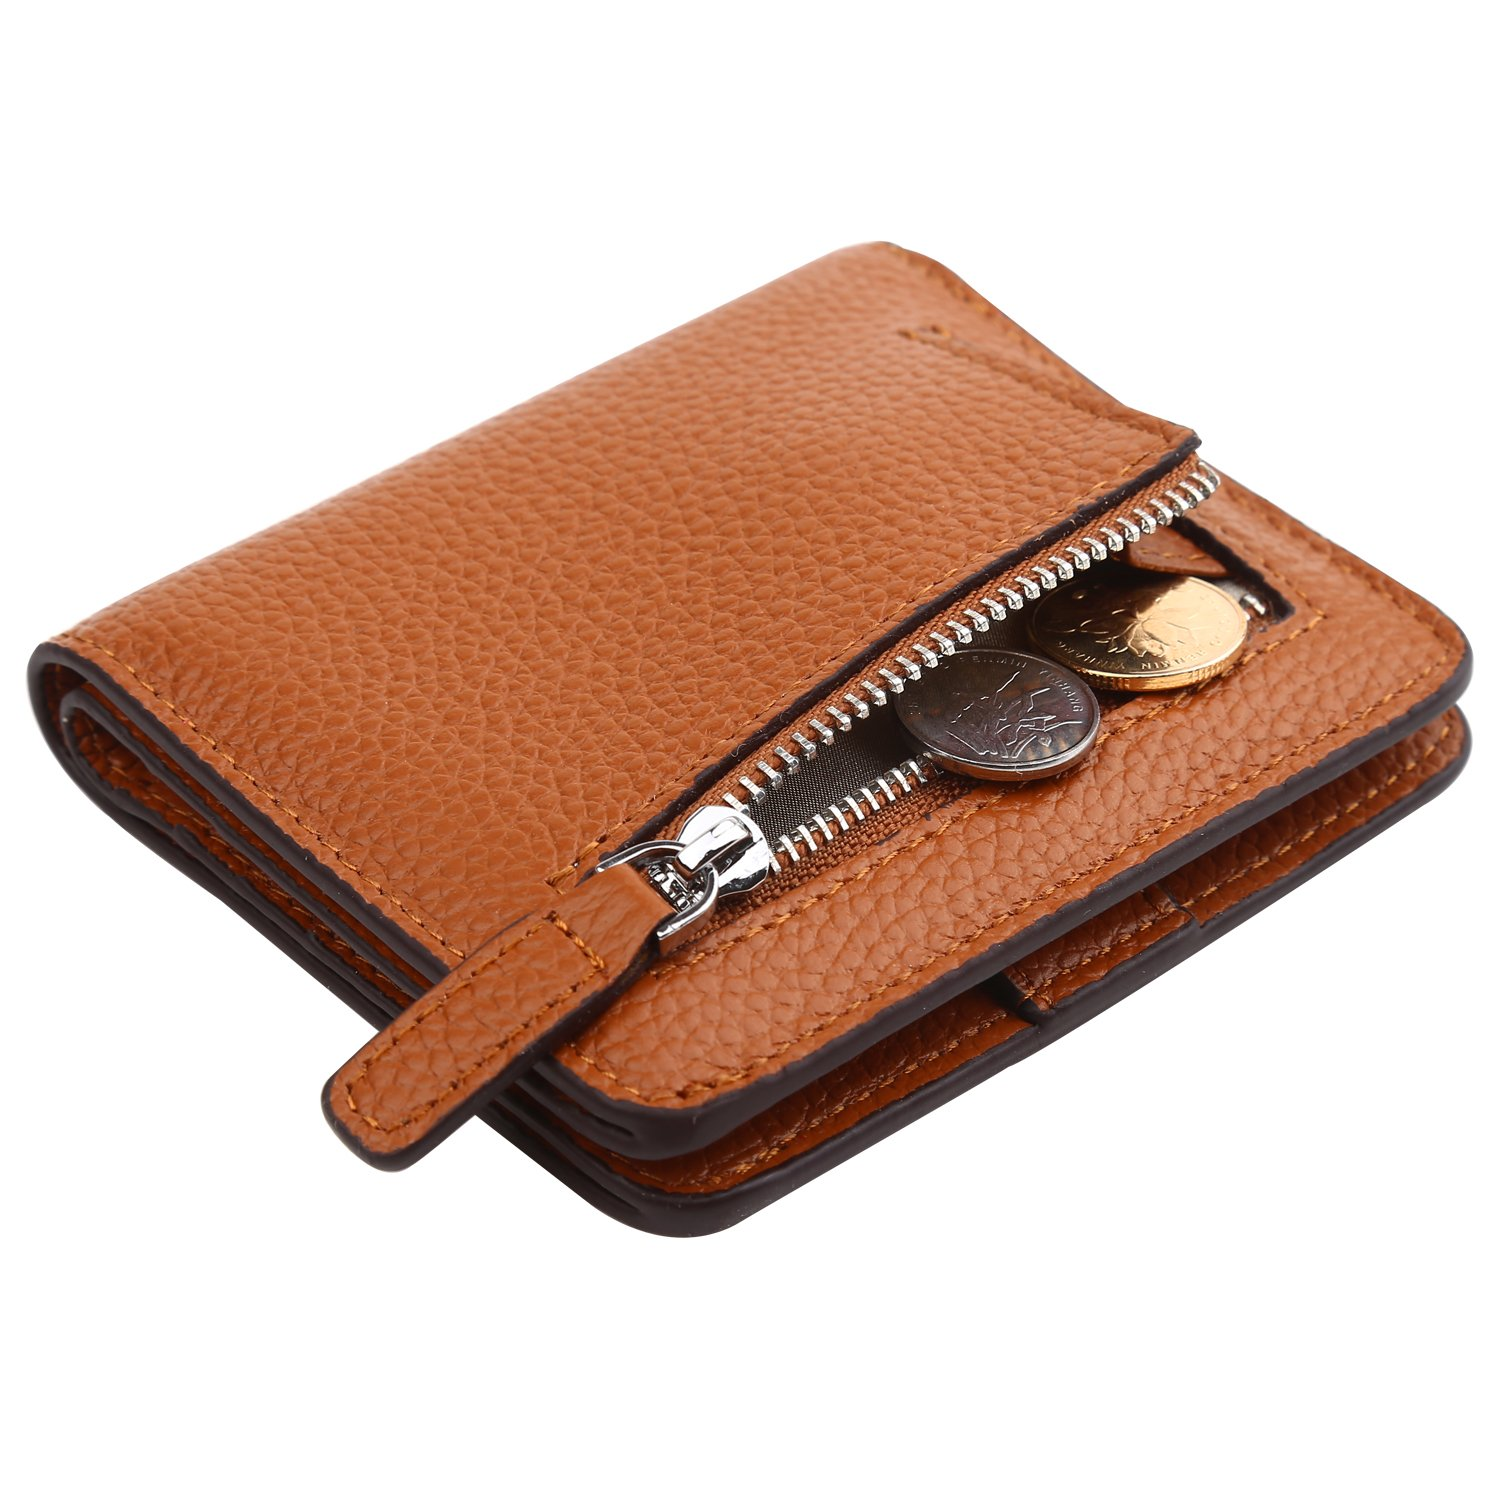 Dante Women's RFID Blocking Small Compact Bifold Leather Pocket Wallet Ladies Mini Purse(Pebble Brown)